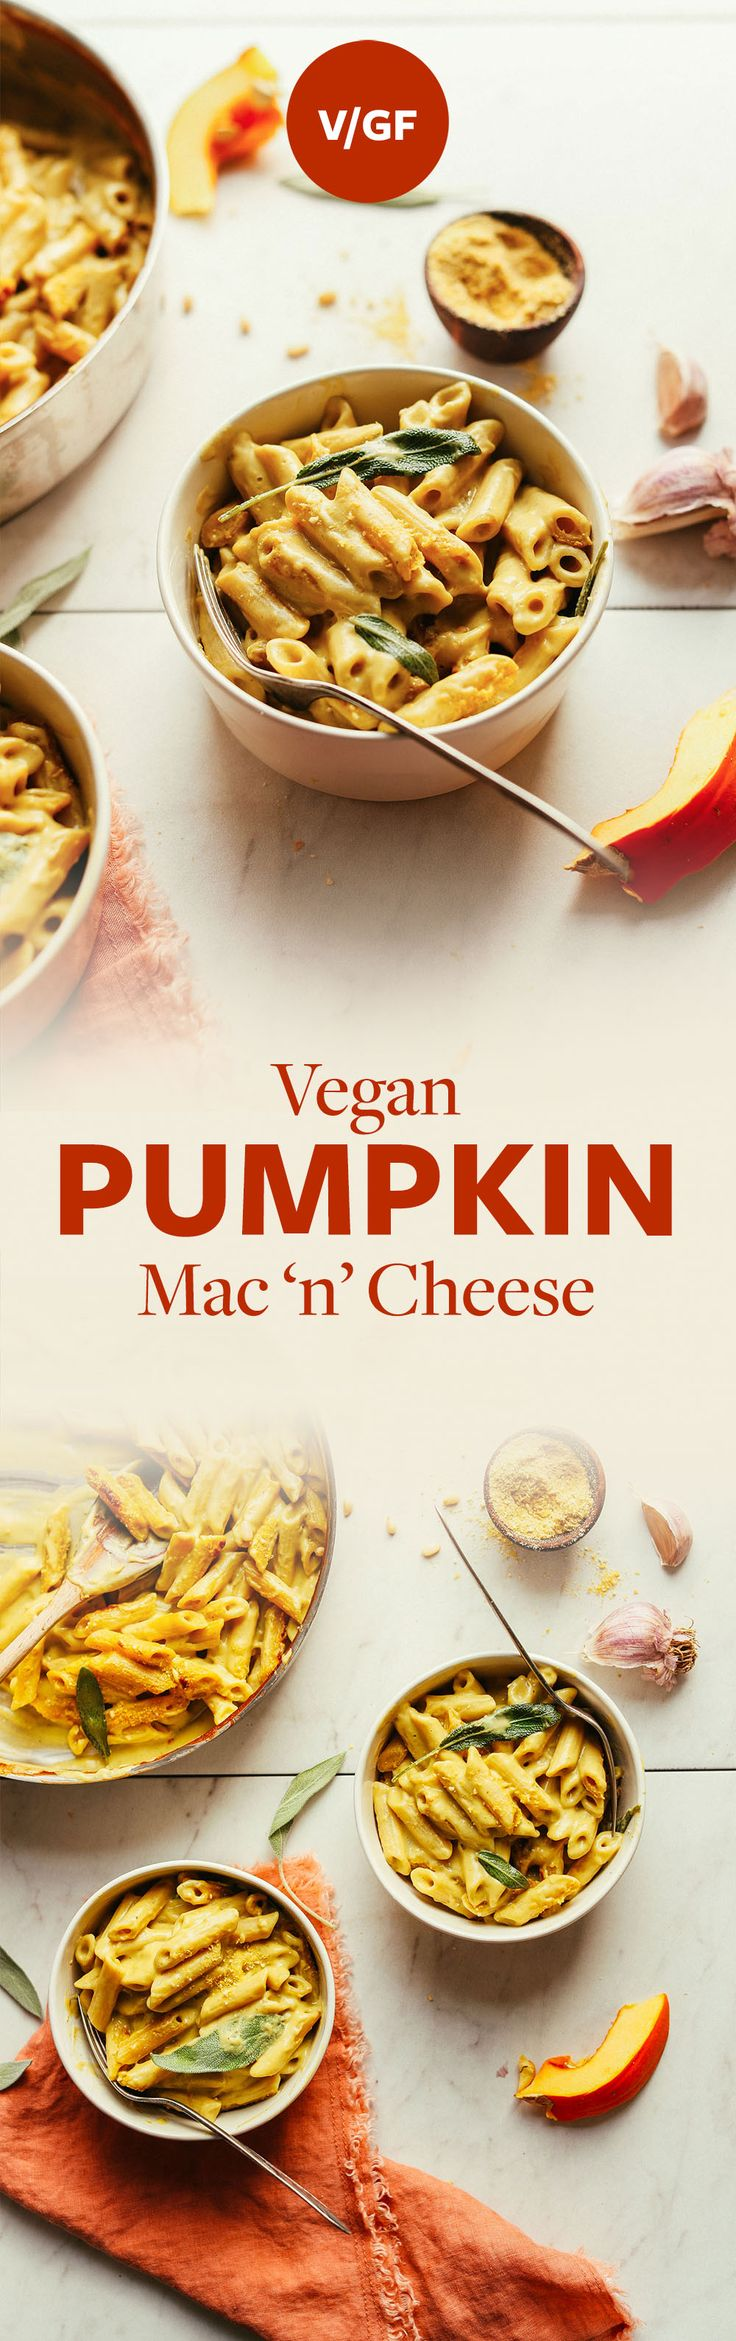 AMAZING Pumpkin Mac 'n' Cheese! 10 ingredients, cheesy, hearty, SO delicious! #vegan